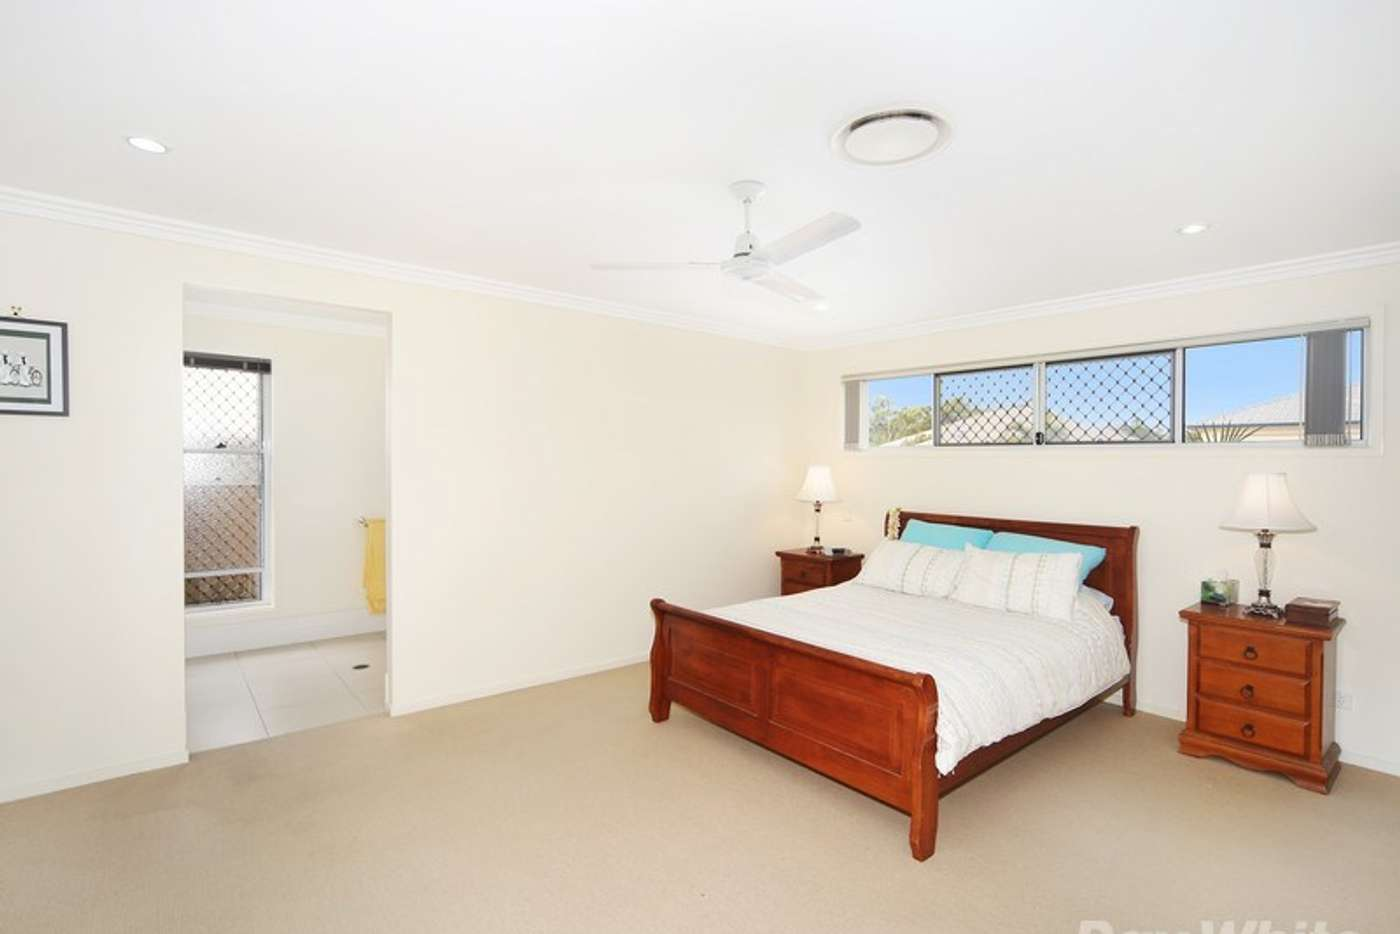 Sixth view of Homely house listing, 4 Maidstone Crescent, Peregian Springs QLD 4573